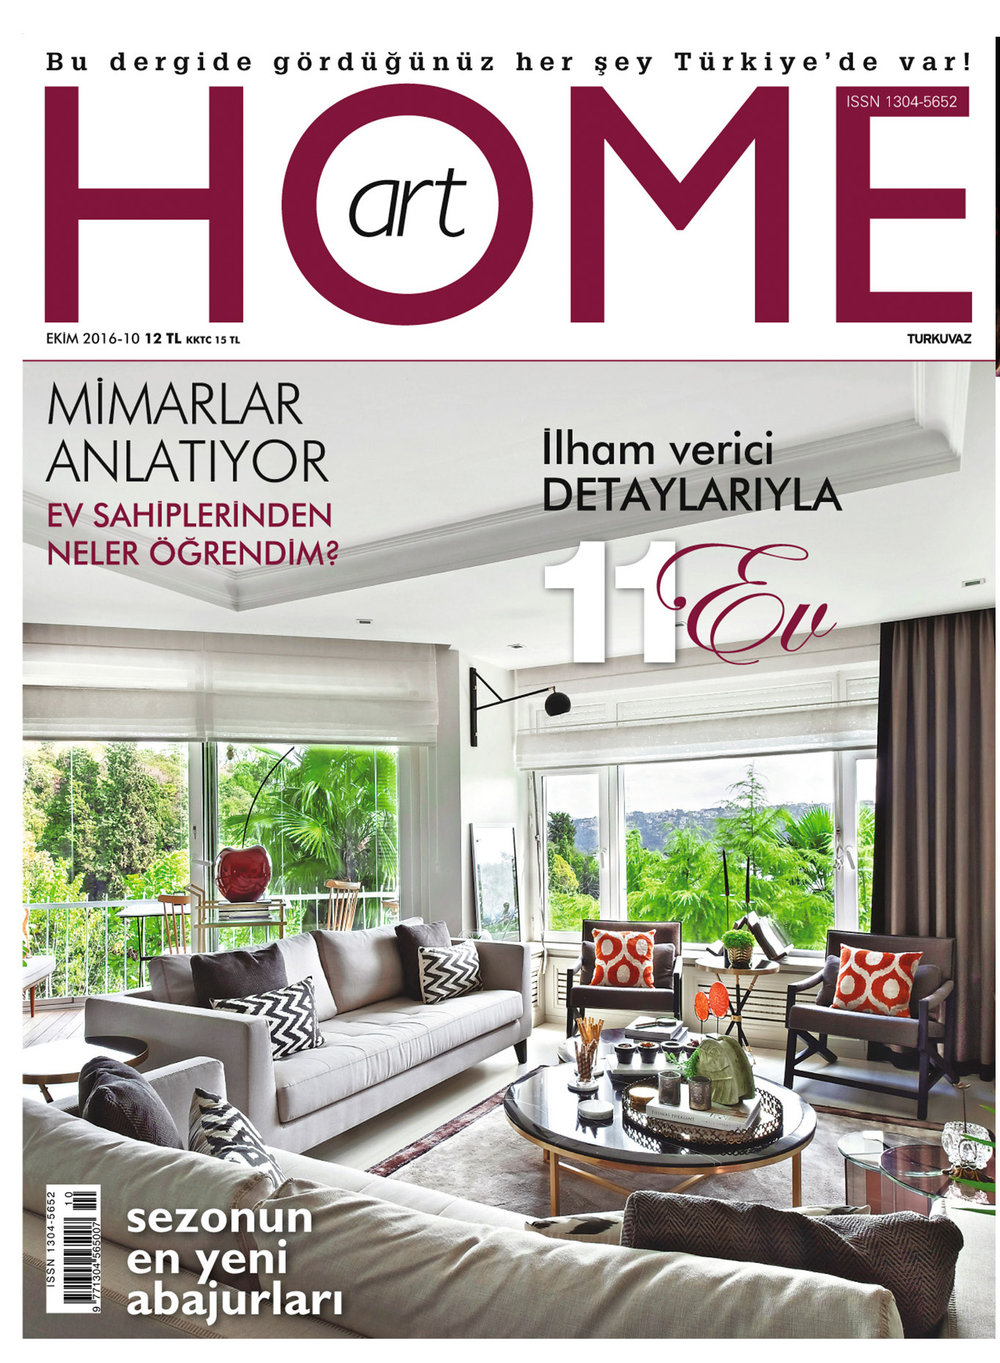 Home_art_magazine 01.jpg